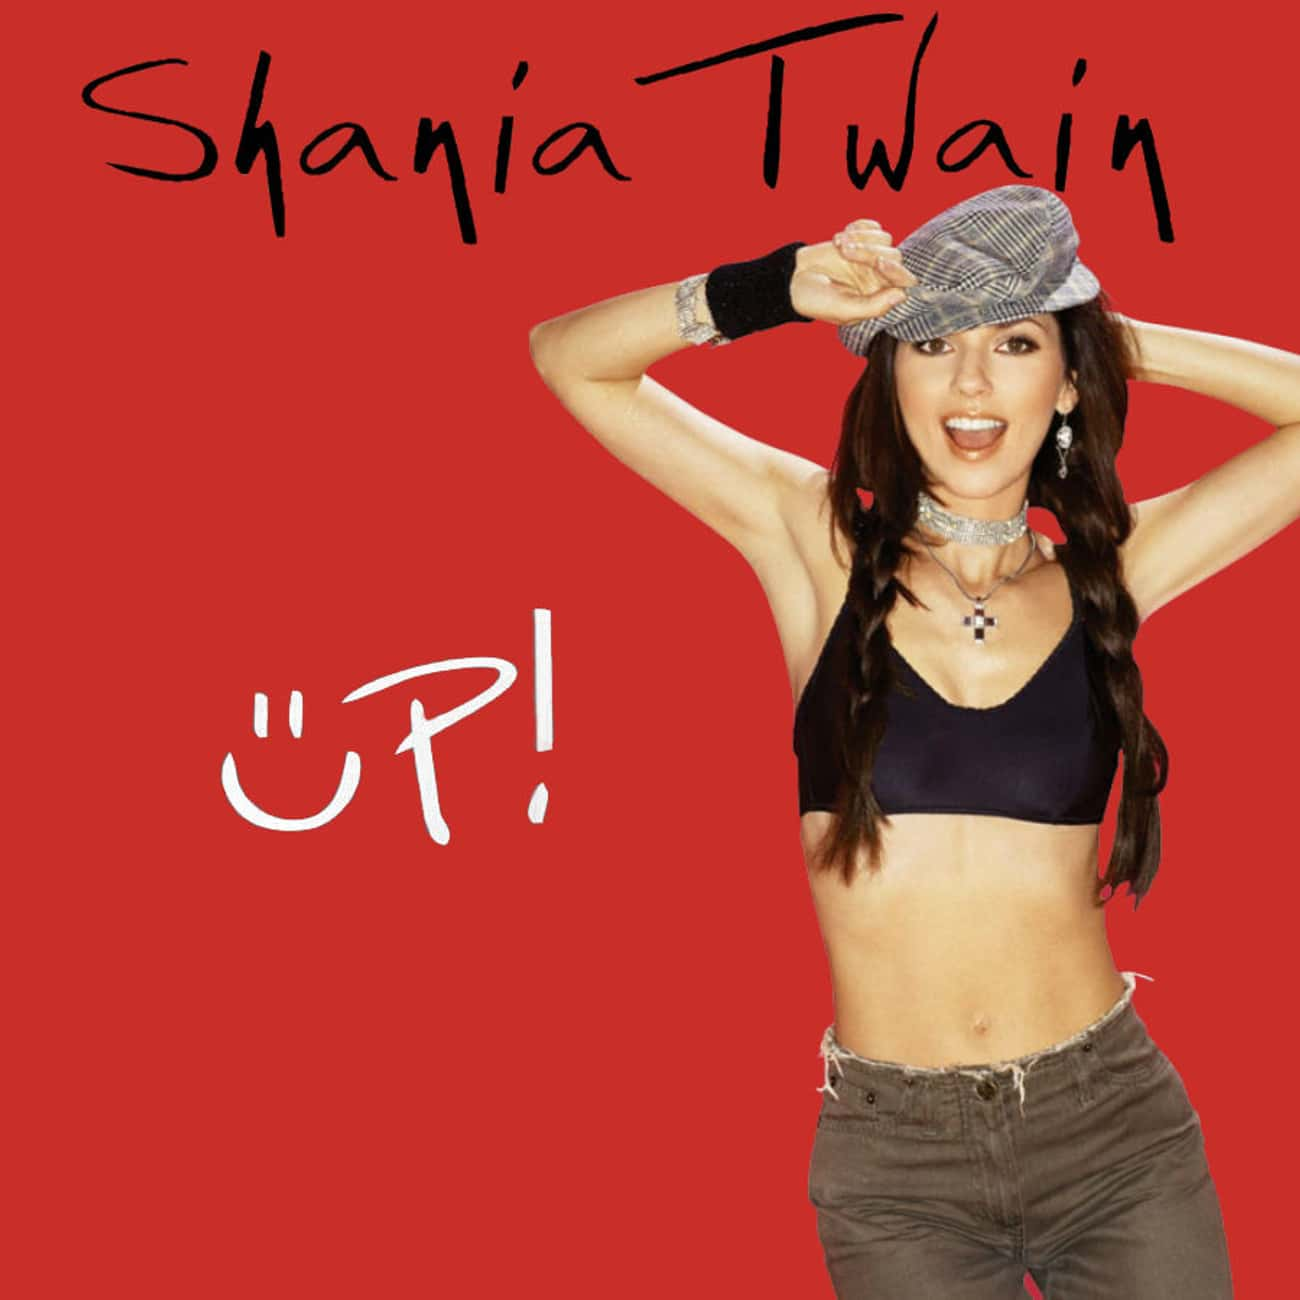 Up! is listed (or ranked) 2 on the list The Best Shania Twain Albums of All Time